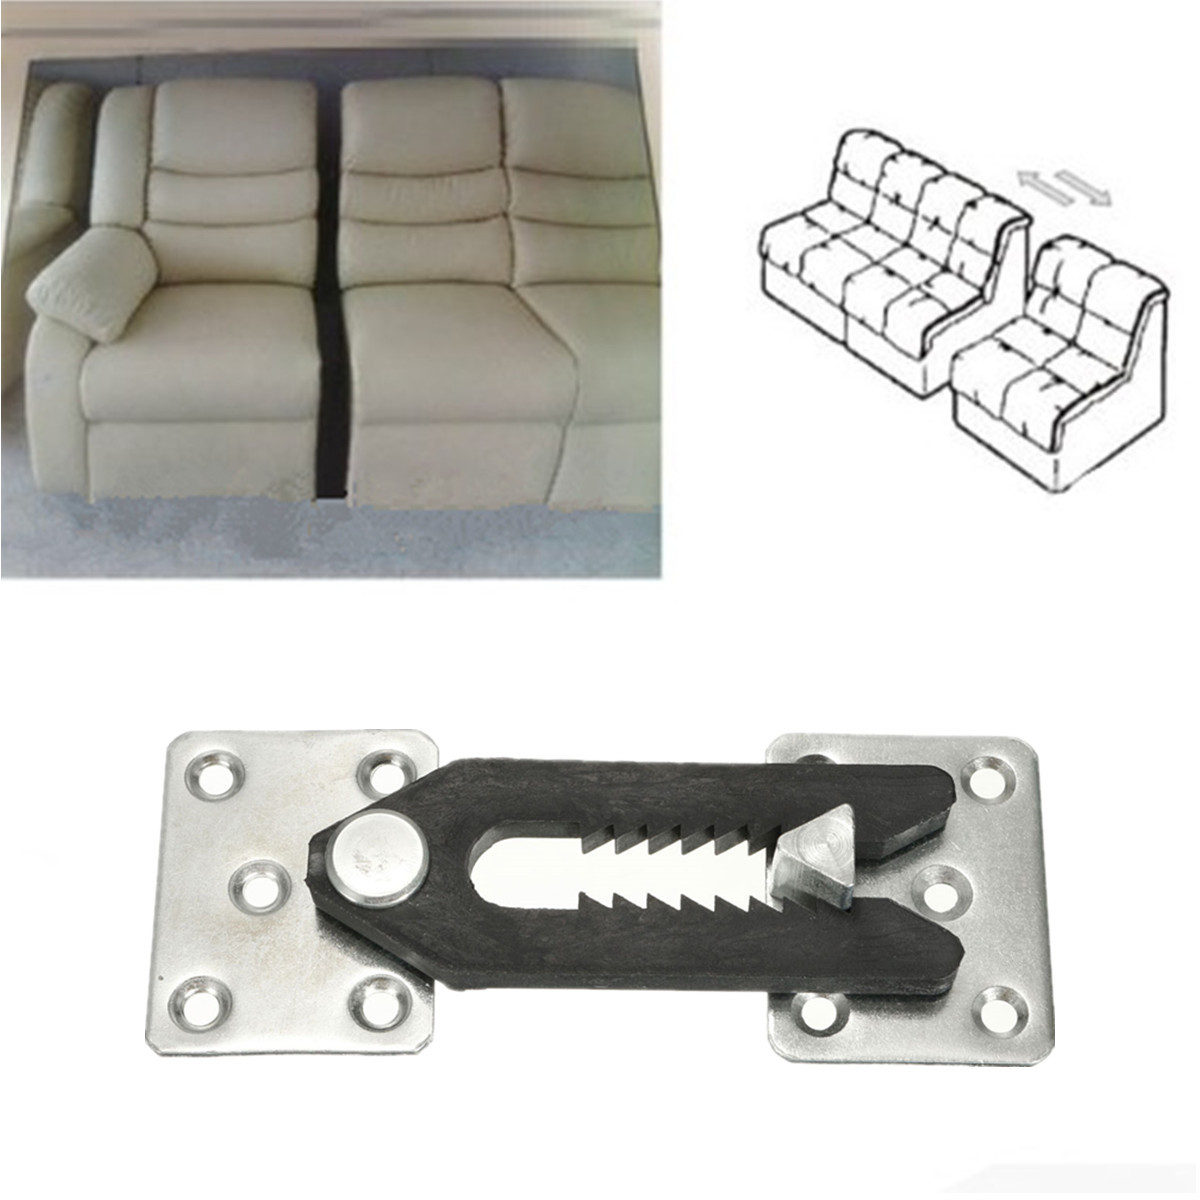 sofa couch sectional furniture connector joint snap alligator style lazy boy queen sleeper with air mattress new